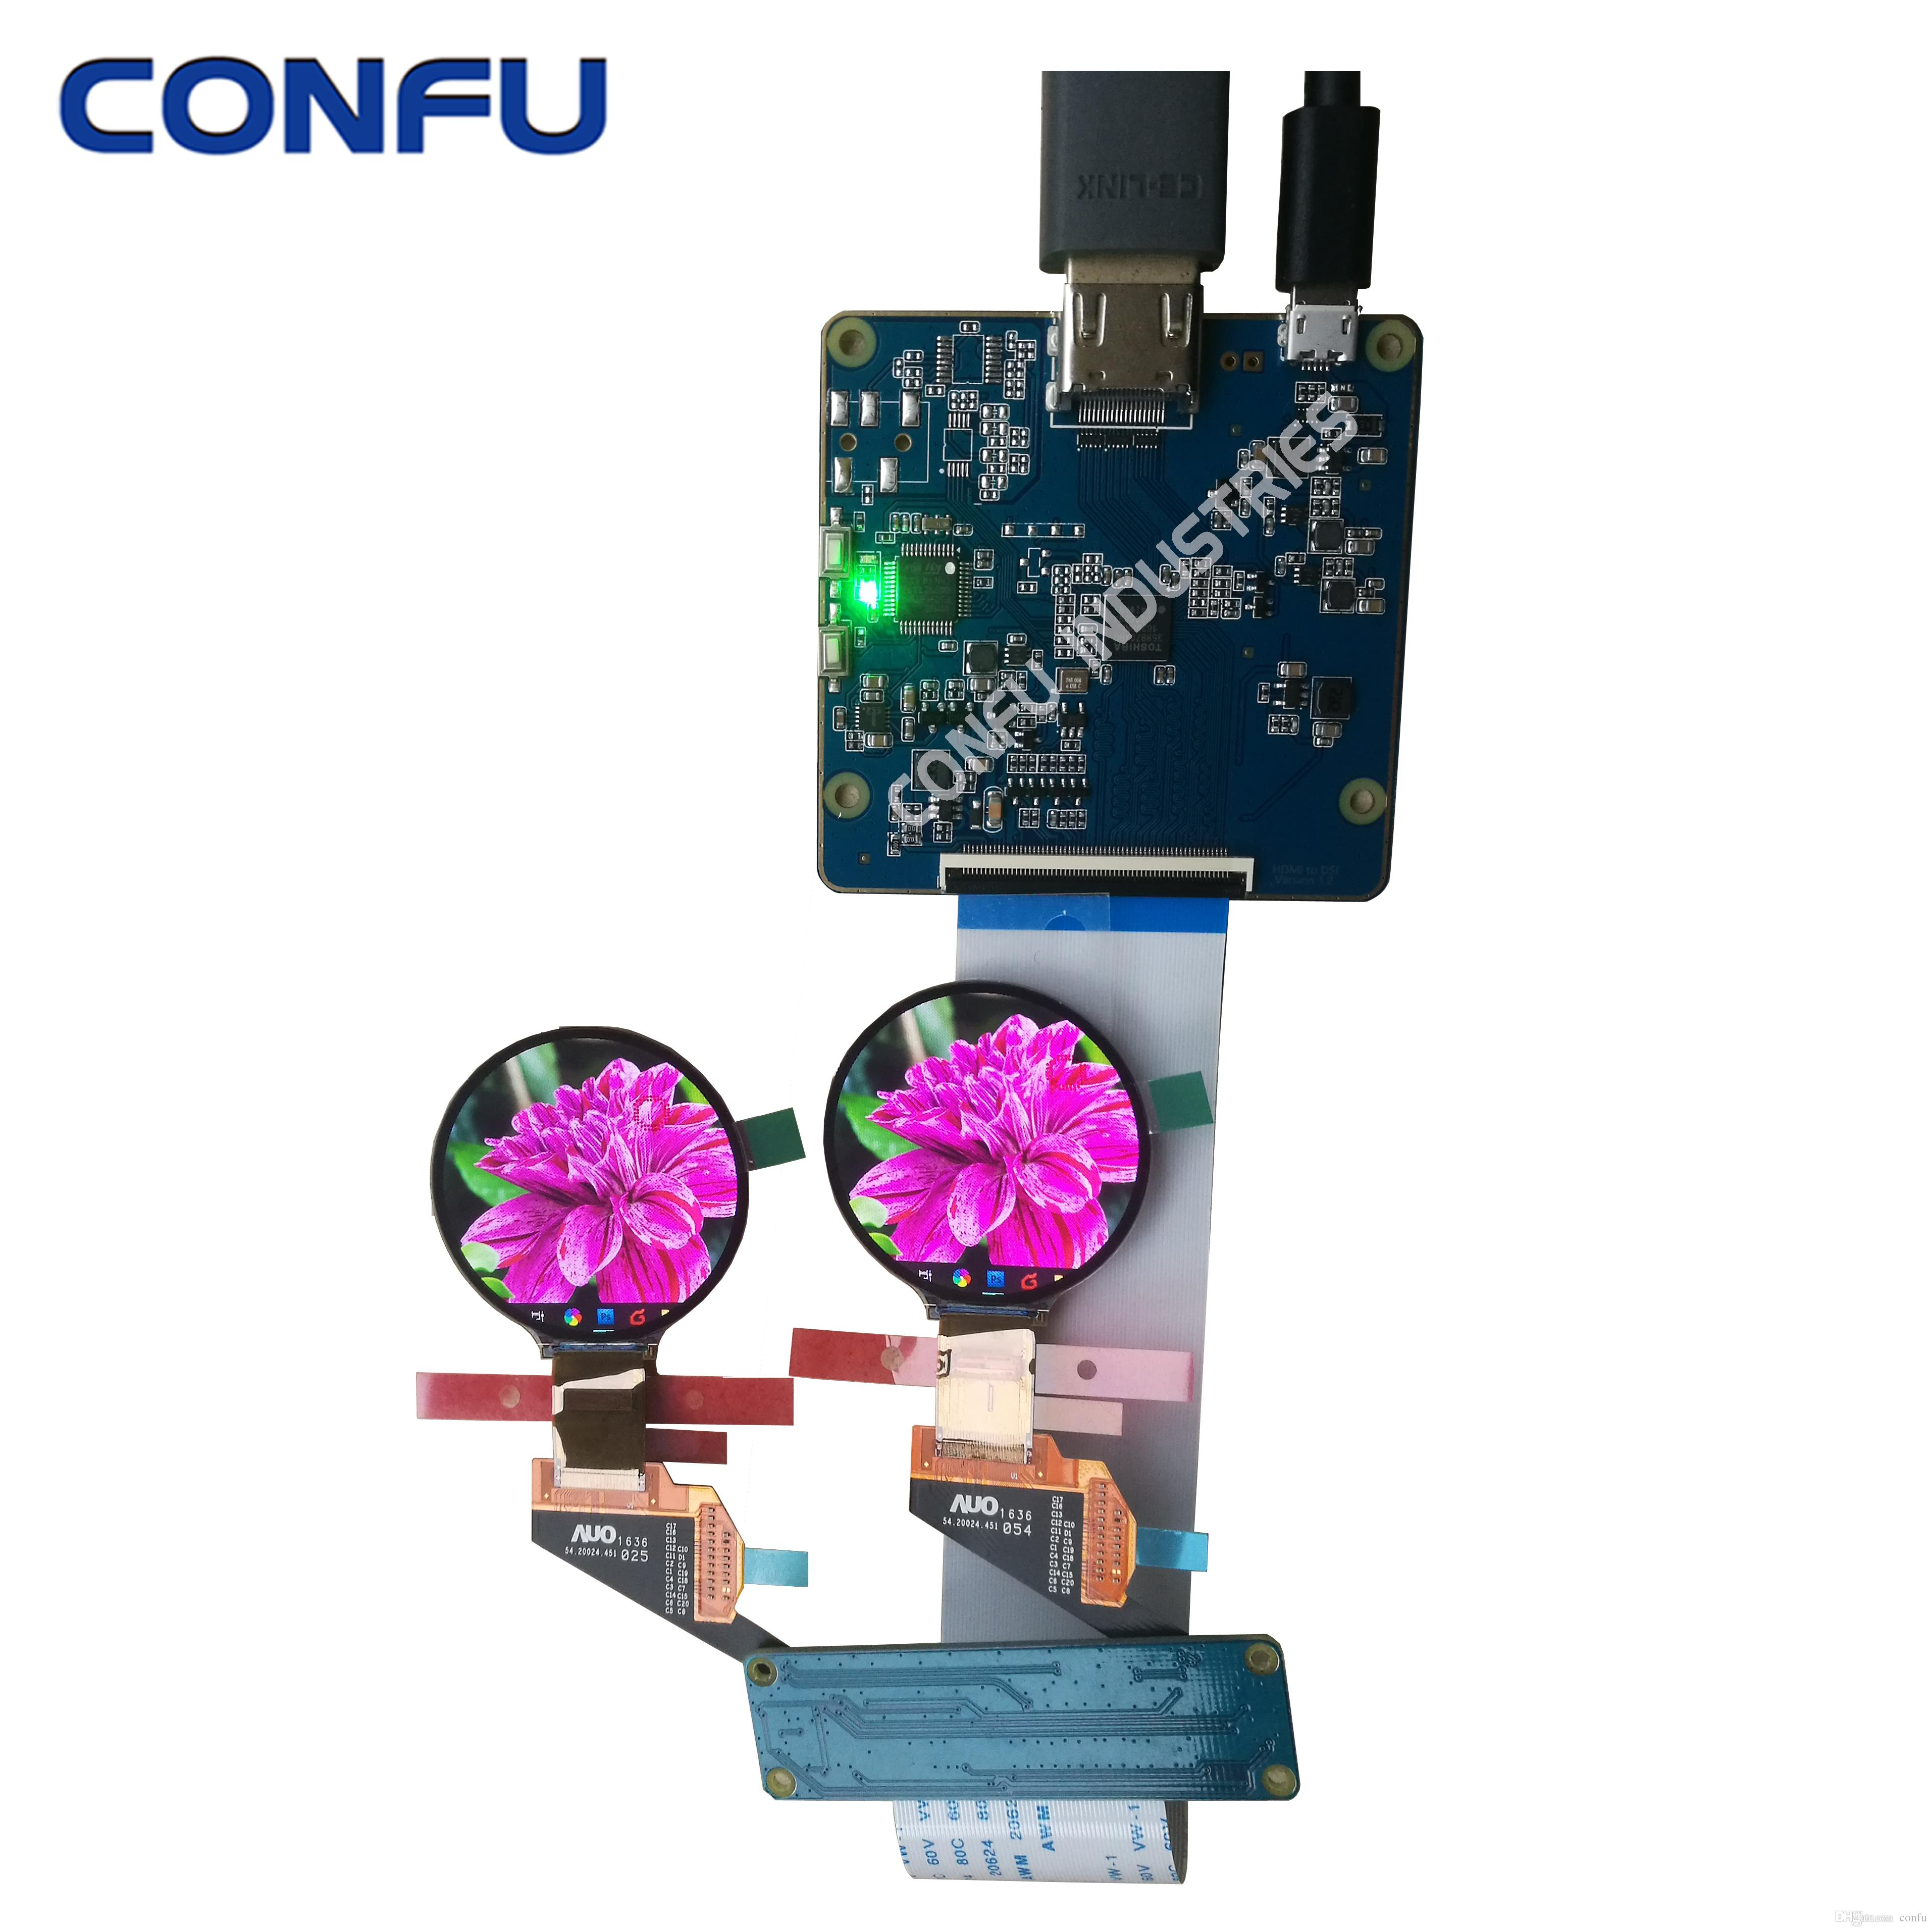 Confu HDMI to MIPI DSI driver board AUO H139BLN01 2 1 39 inch circular  round shaped AMOLED display mipi interface OLED China